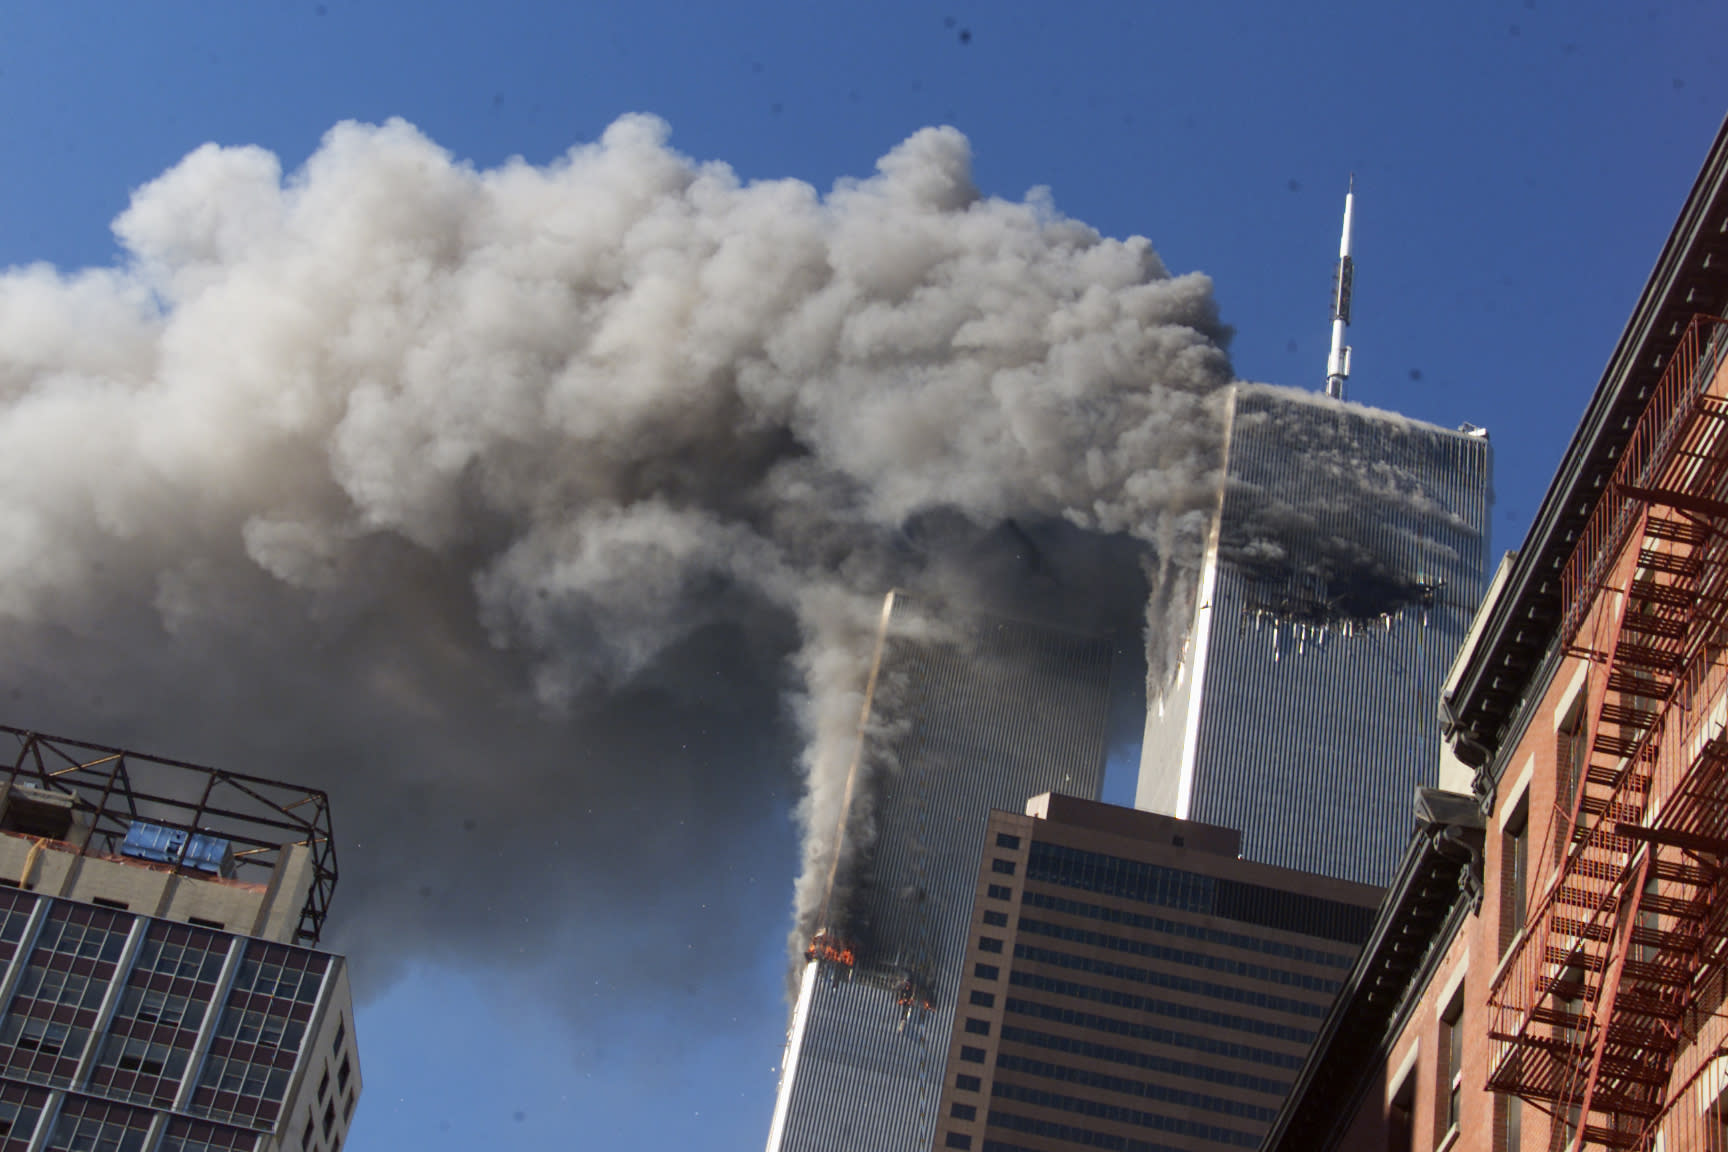 September 11 terrorist attacks: NY  marks 18 years since 9/11 carnage